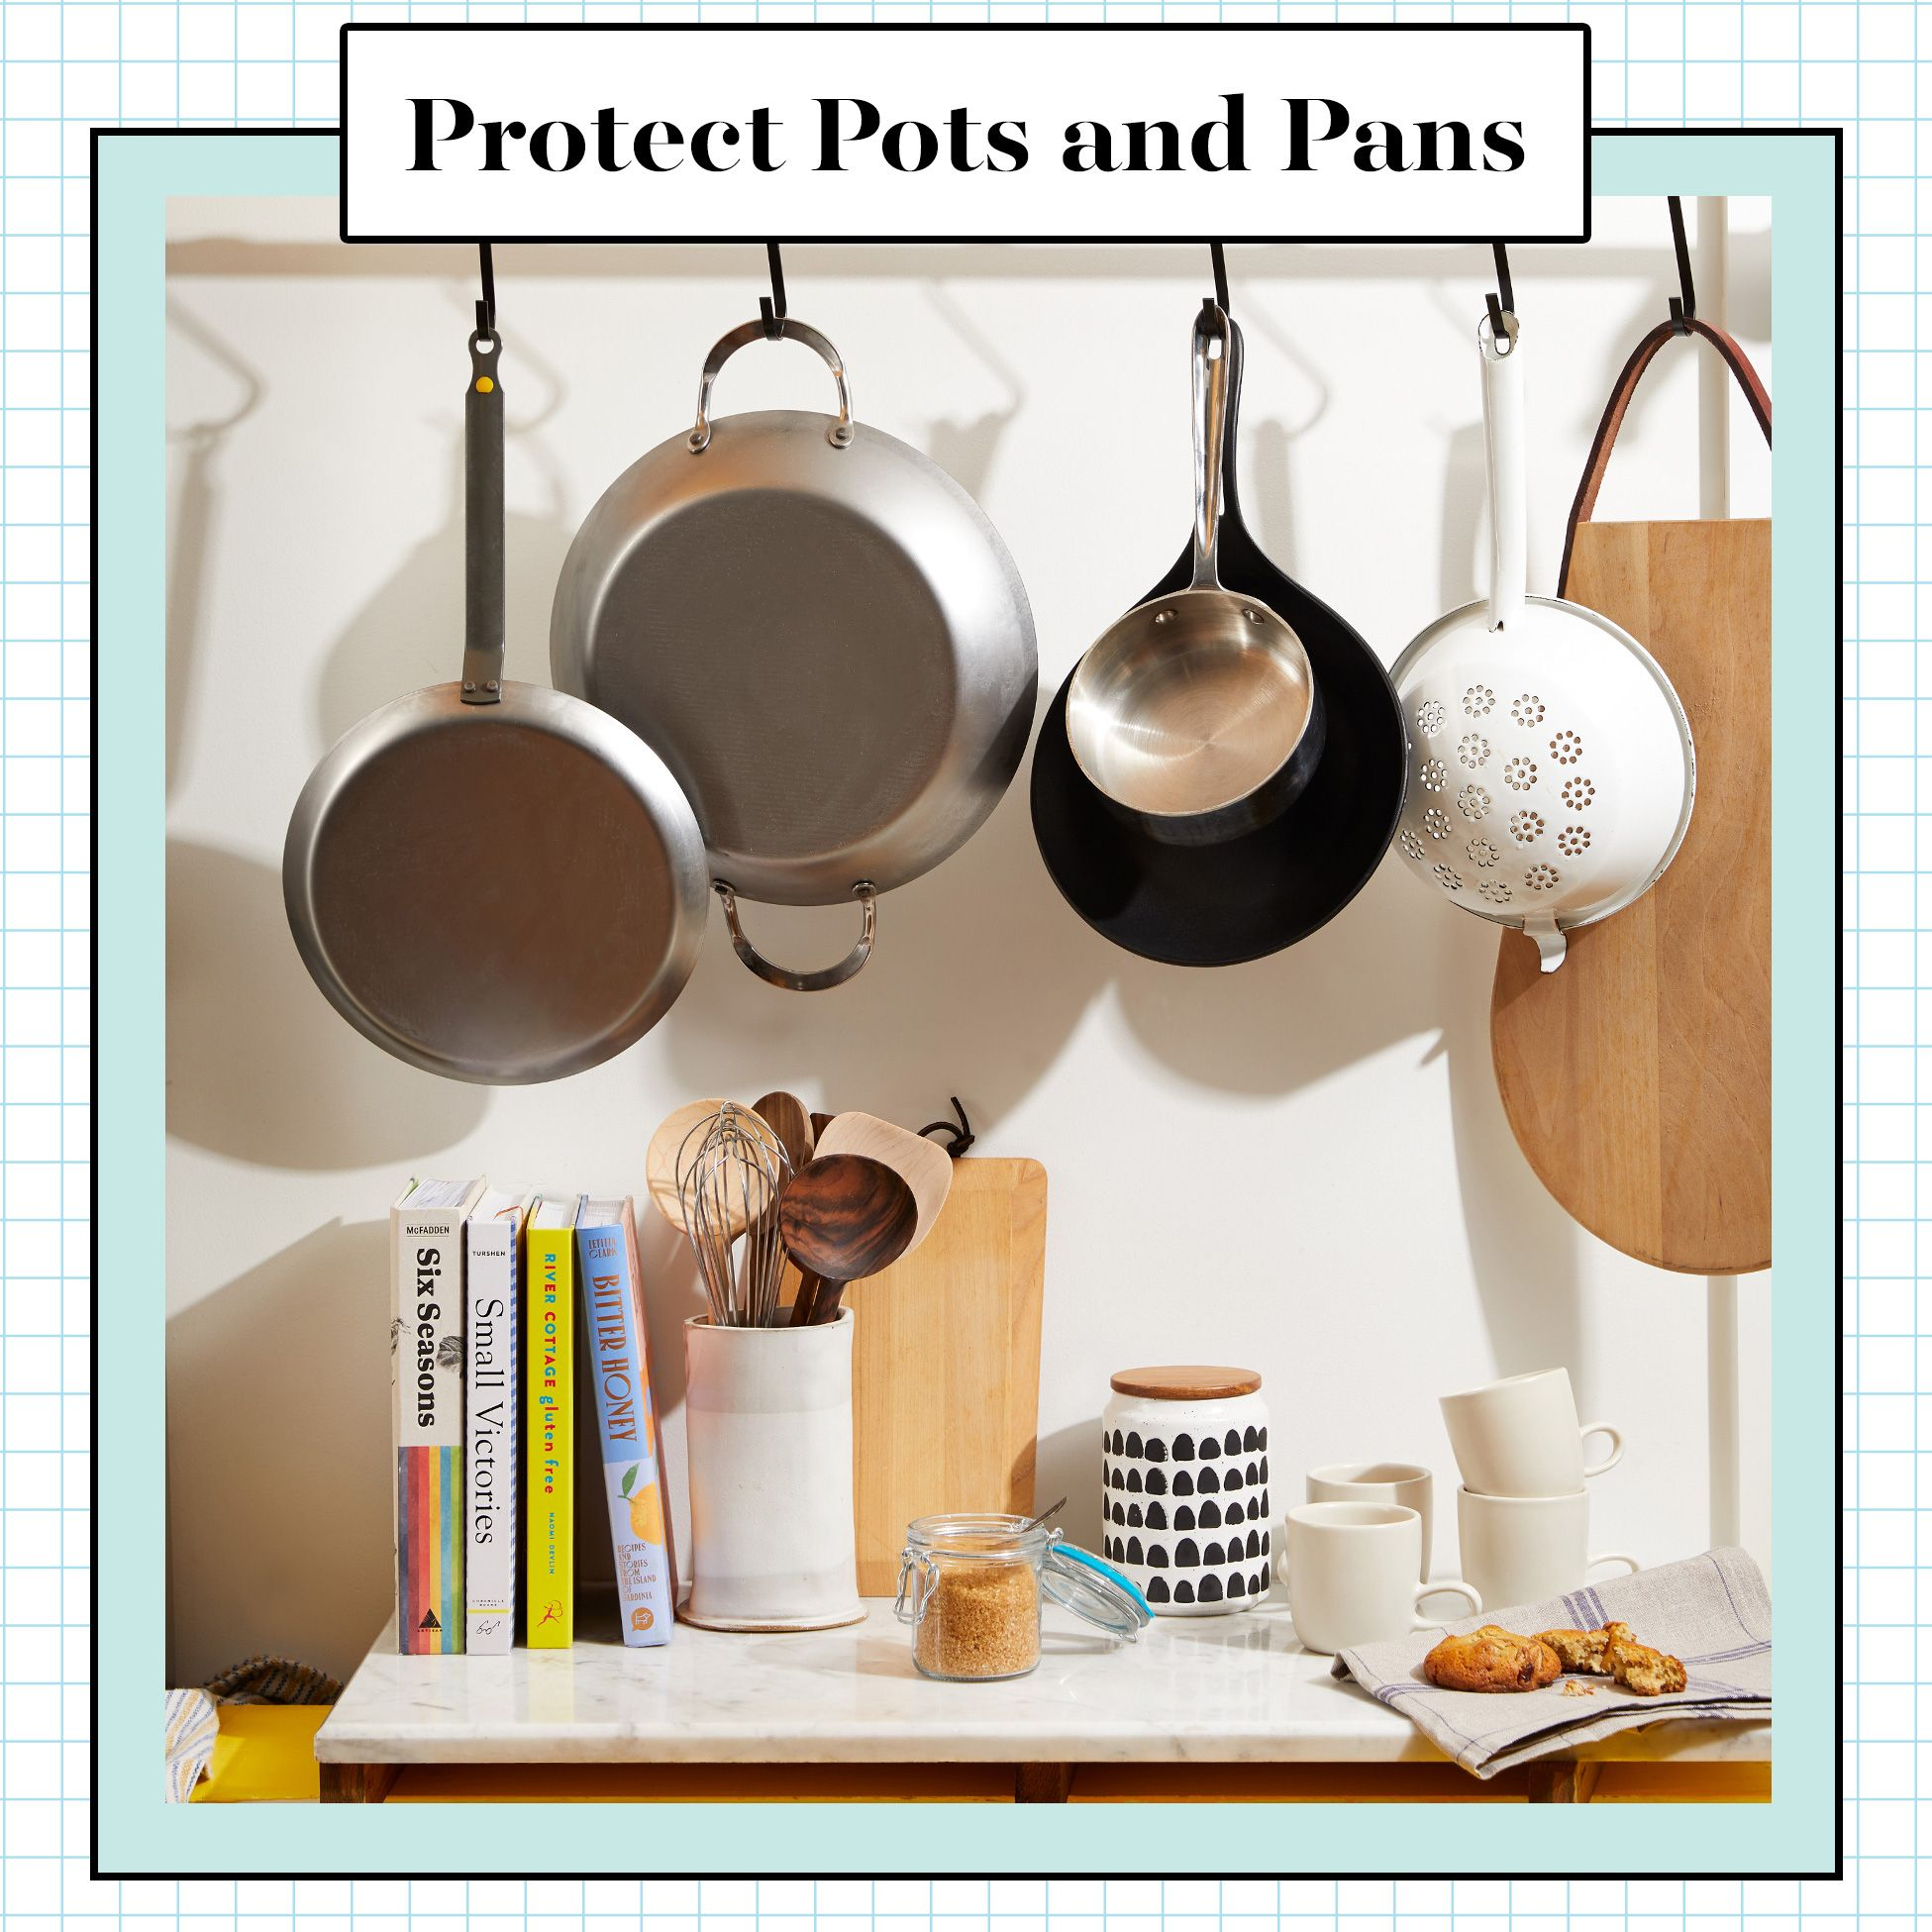 Wash The Right Way To Keep Pots And Pans Looking Brand New